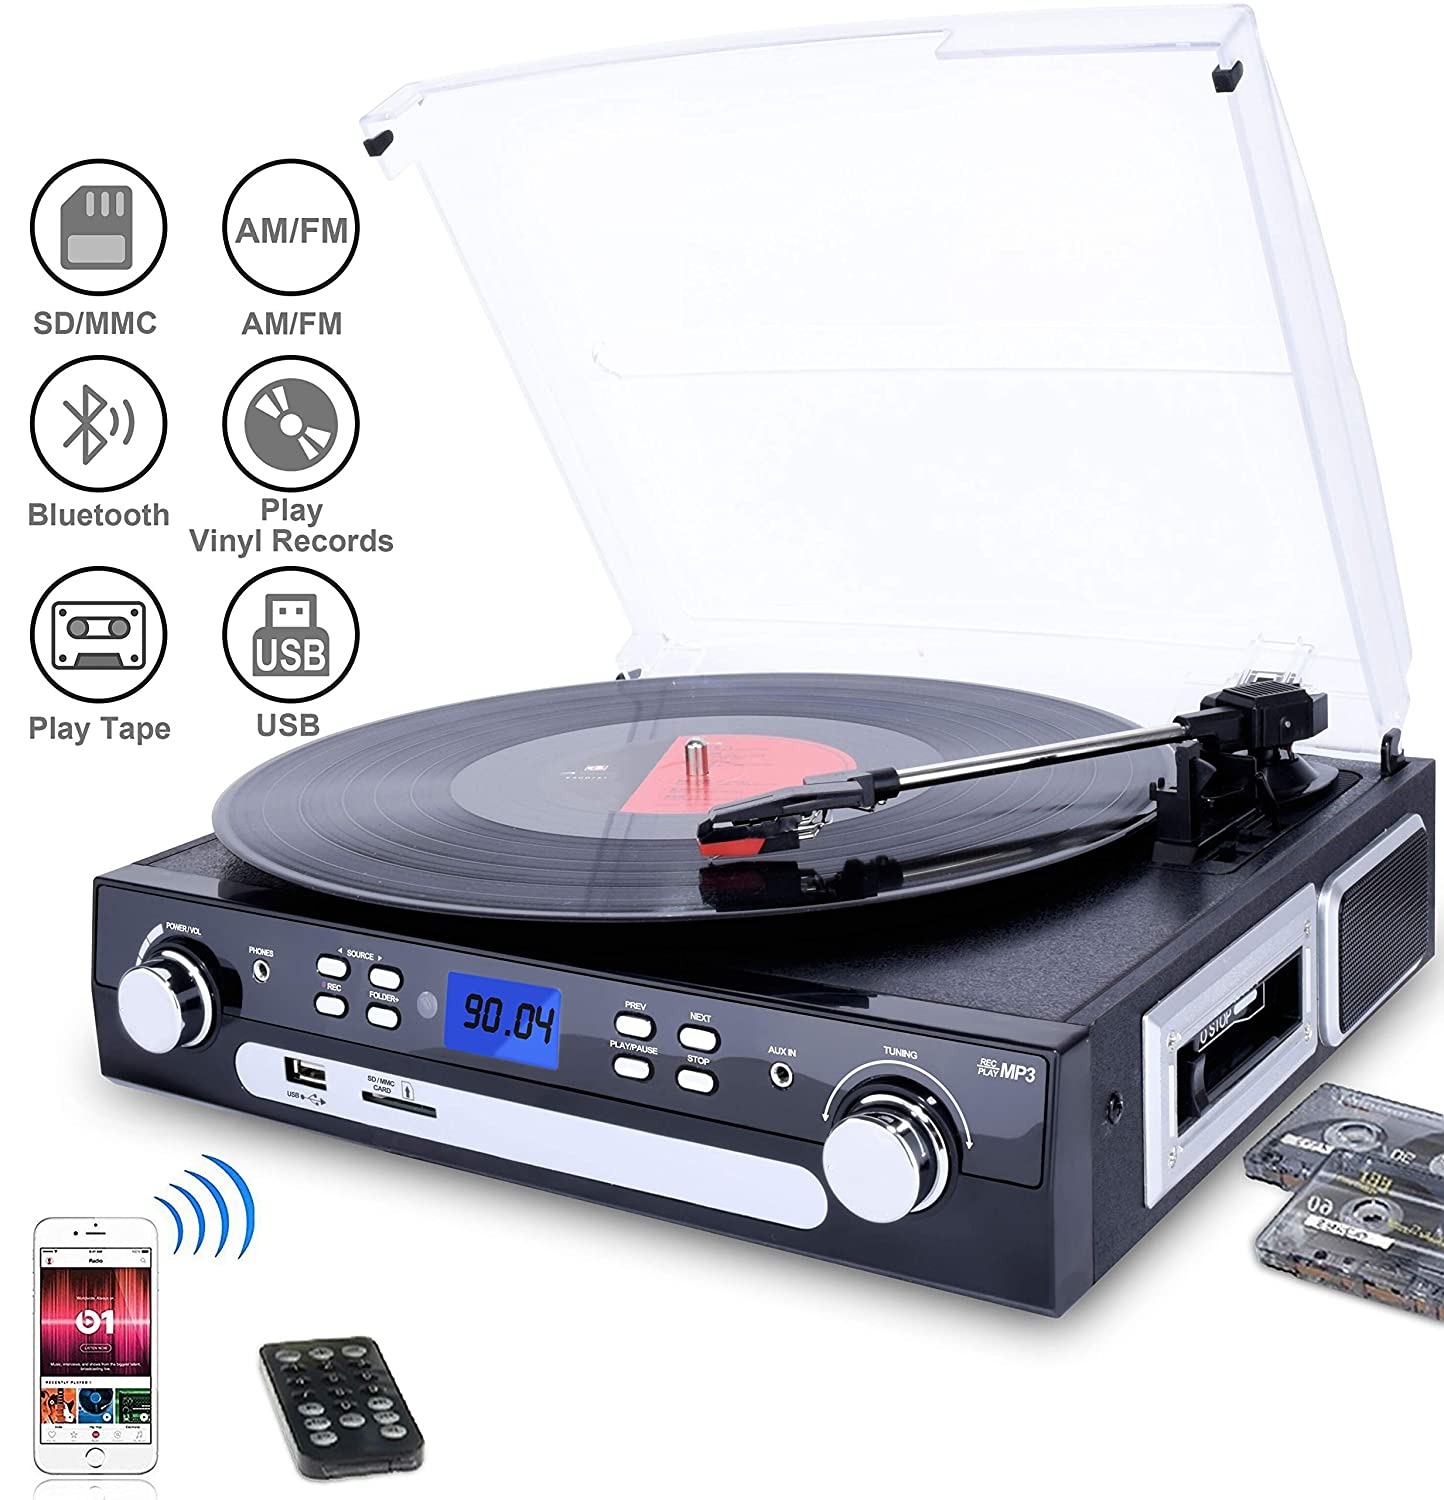 Digitnow! Bluetooth Viny Record Player Turntable, Cassette,Radio and Aux in with USB Port & SD Encoding- Remote Control,Built-in stereo speaker,Stand Alone Music Player ,Audio Built In Amplifier ( Please note: Long press around 5 seconds to power on) BR